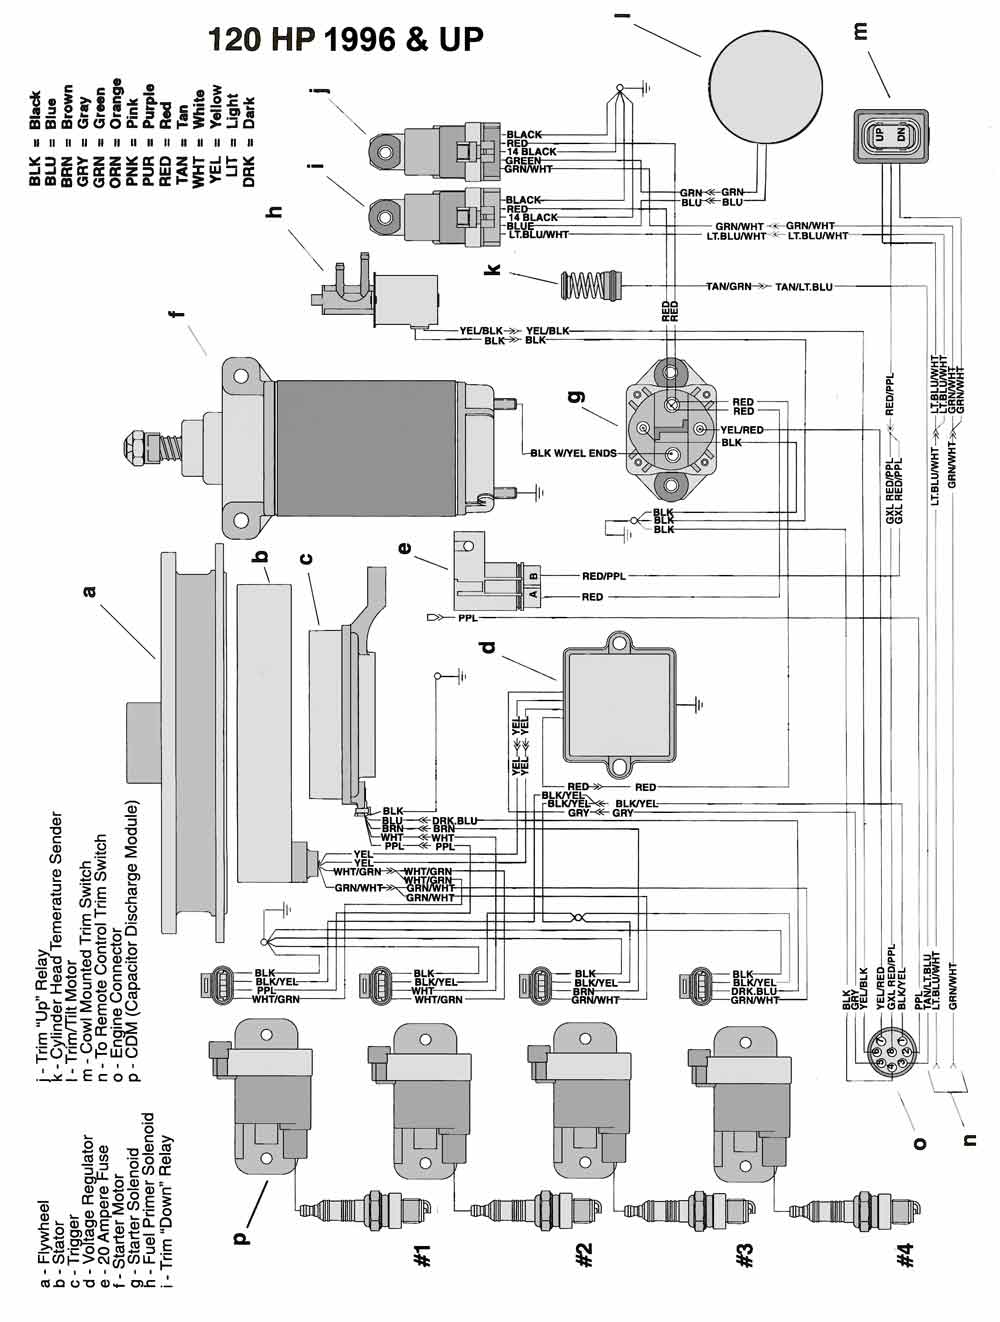 Mercury Force Wiring Diagrams Opinions About Diagram 500 I Have A 1996 Outboard 40 Hp Purchase Solenoid For Rh Justanswer Com 120 Schematic